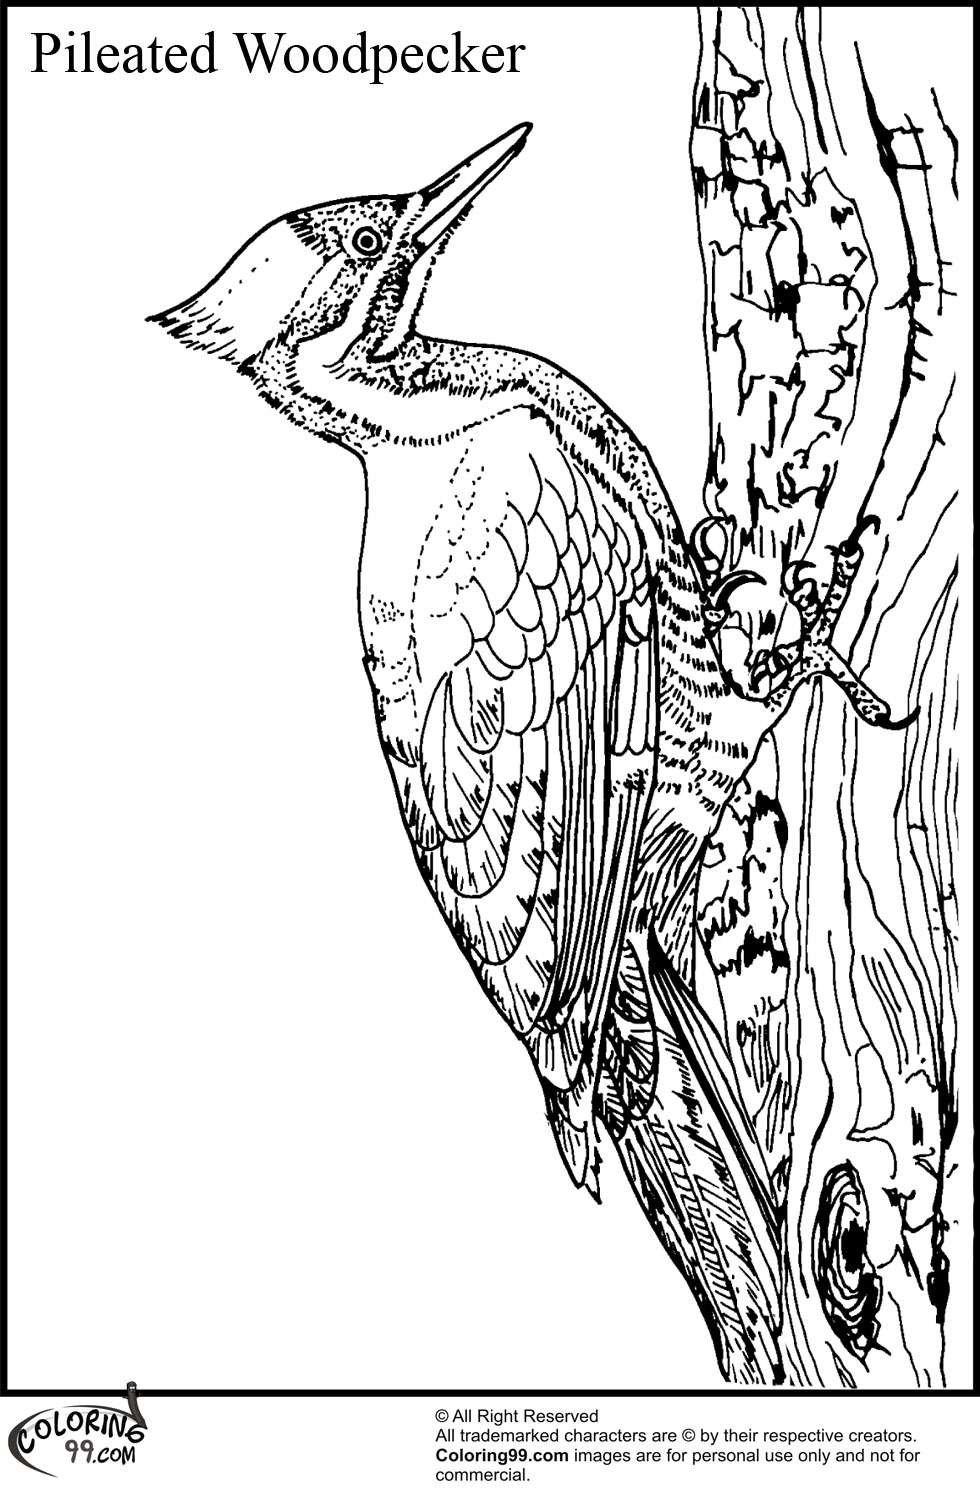 woodpecker coloring page woodpecker pileated coloring page woodpecker page coloring